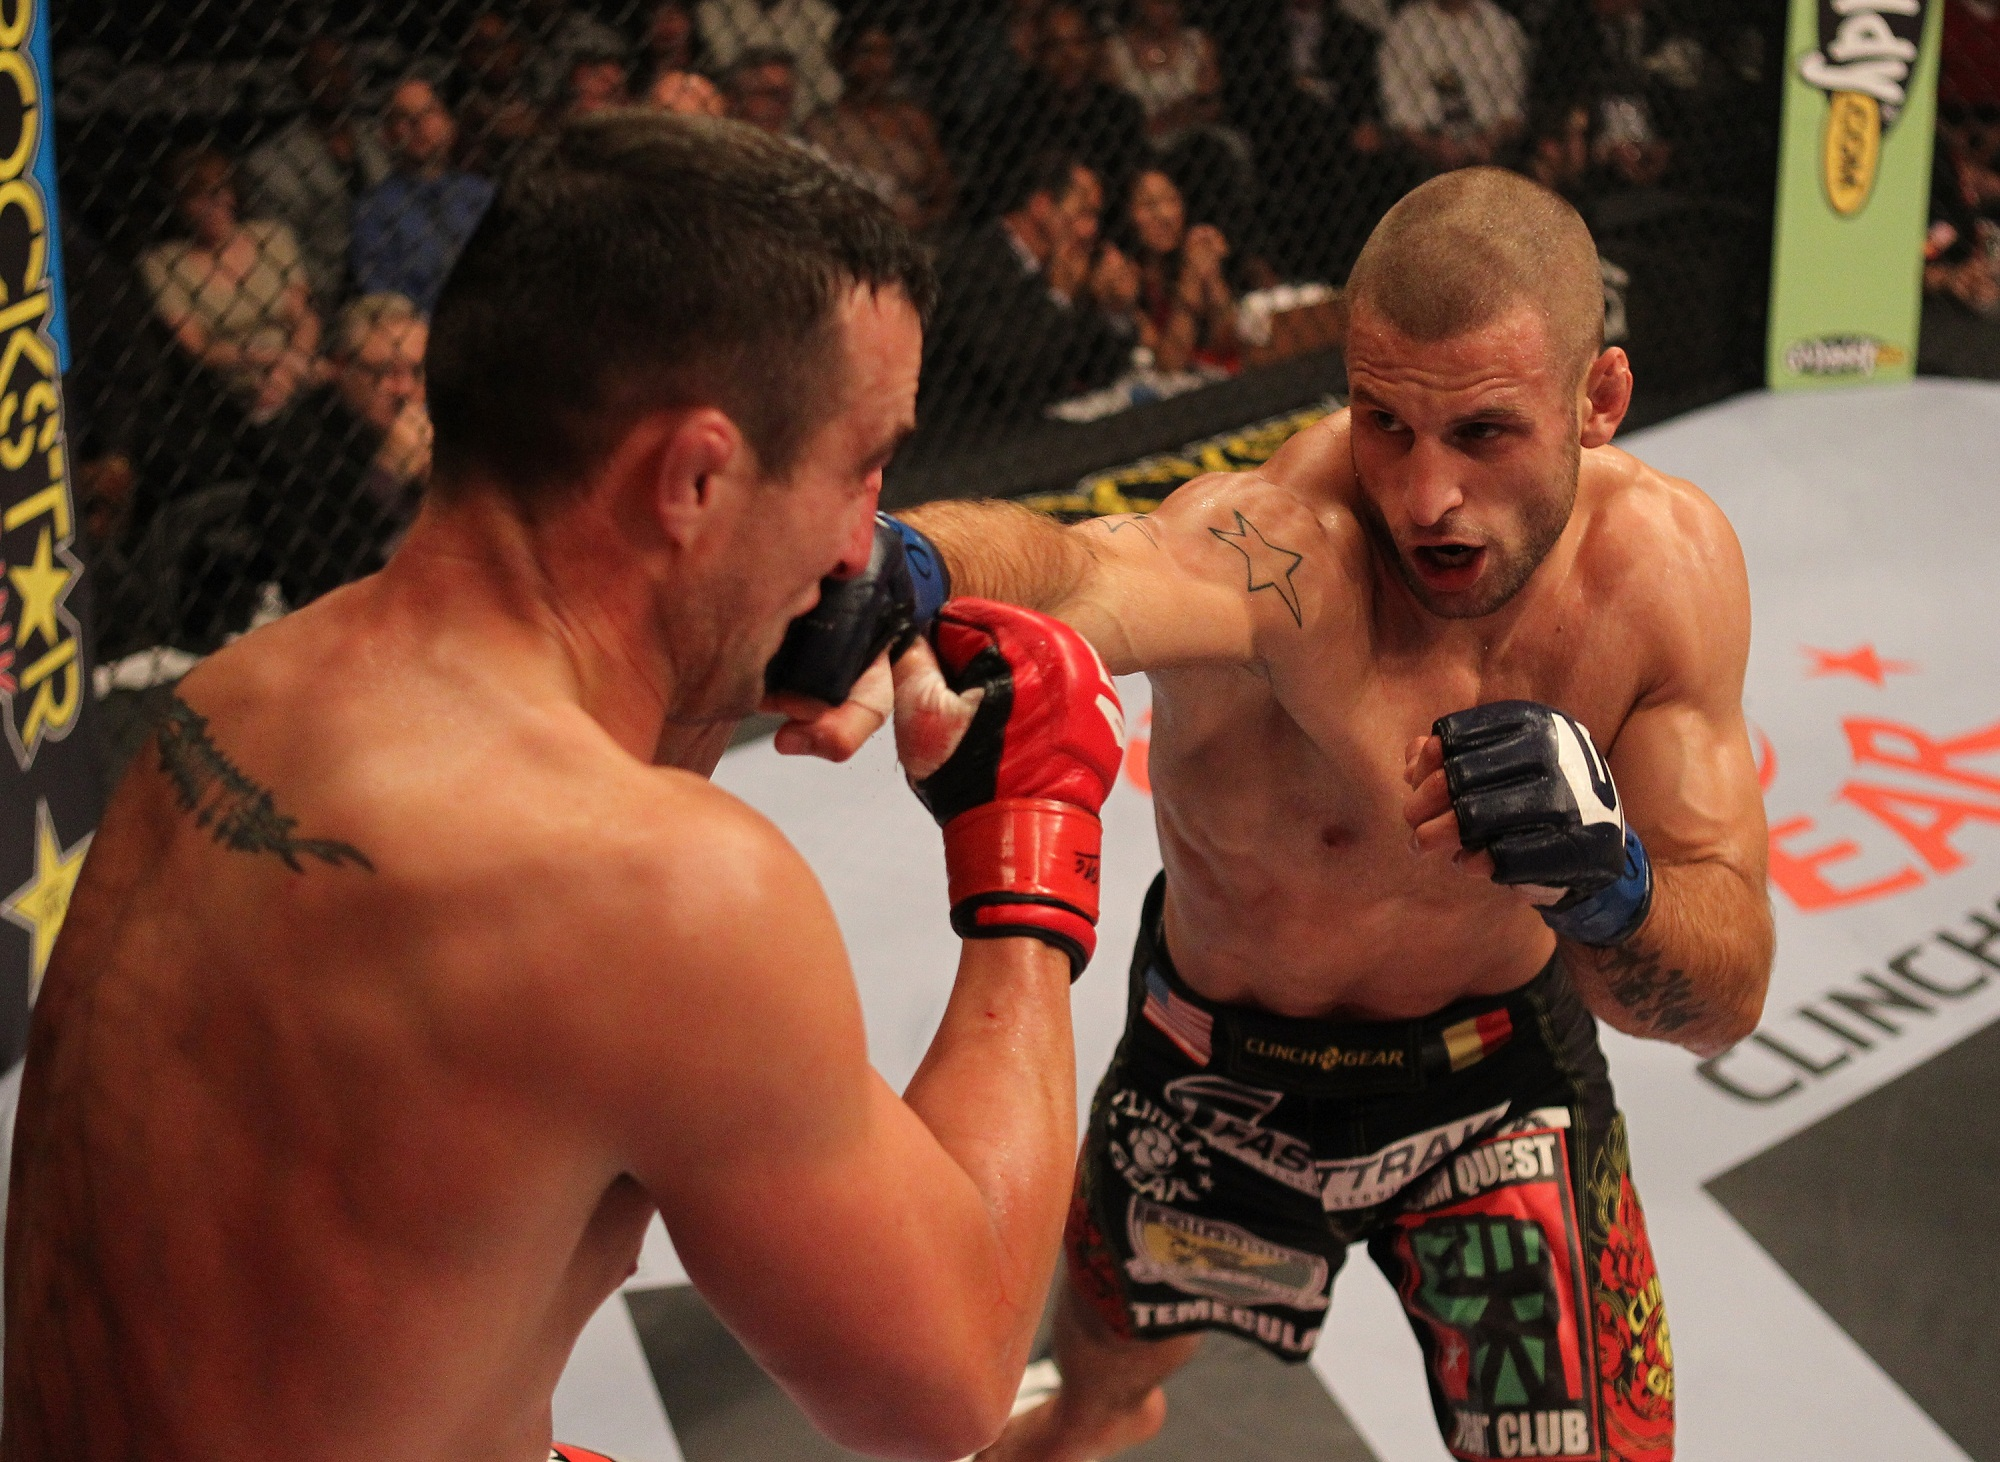 Strikeforce welterweight Tarec Saffiedine